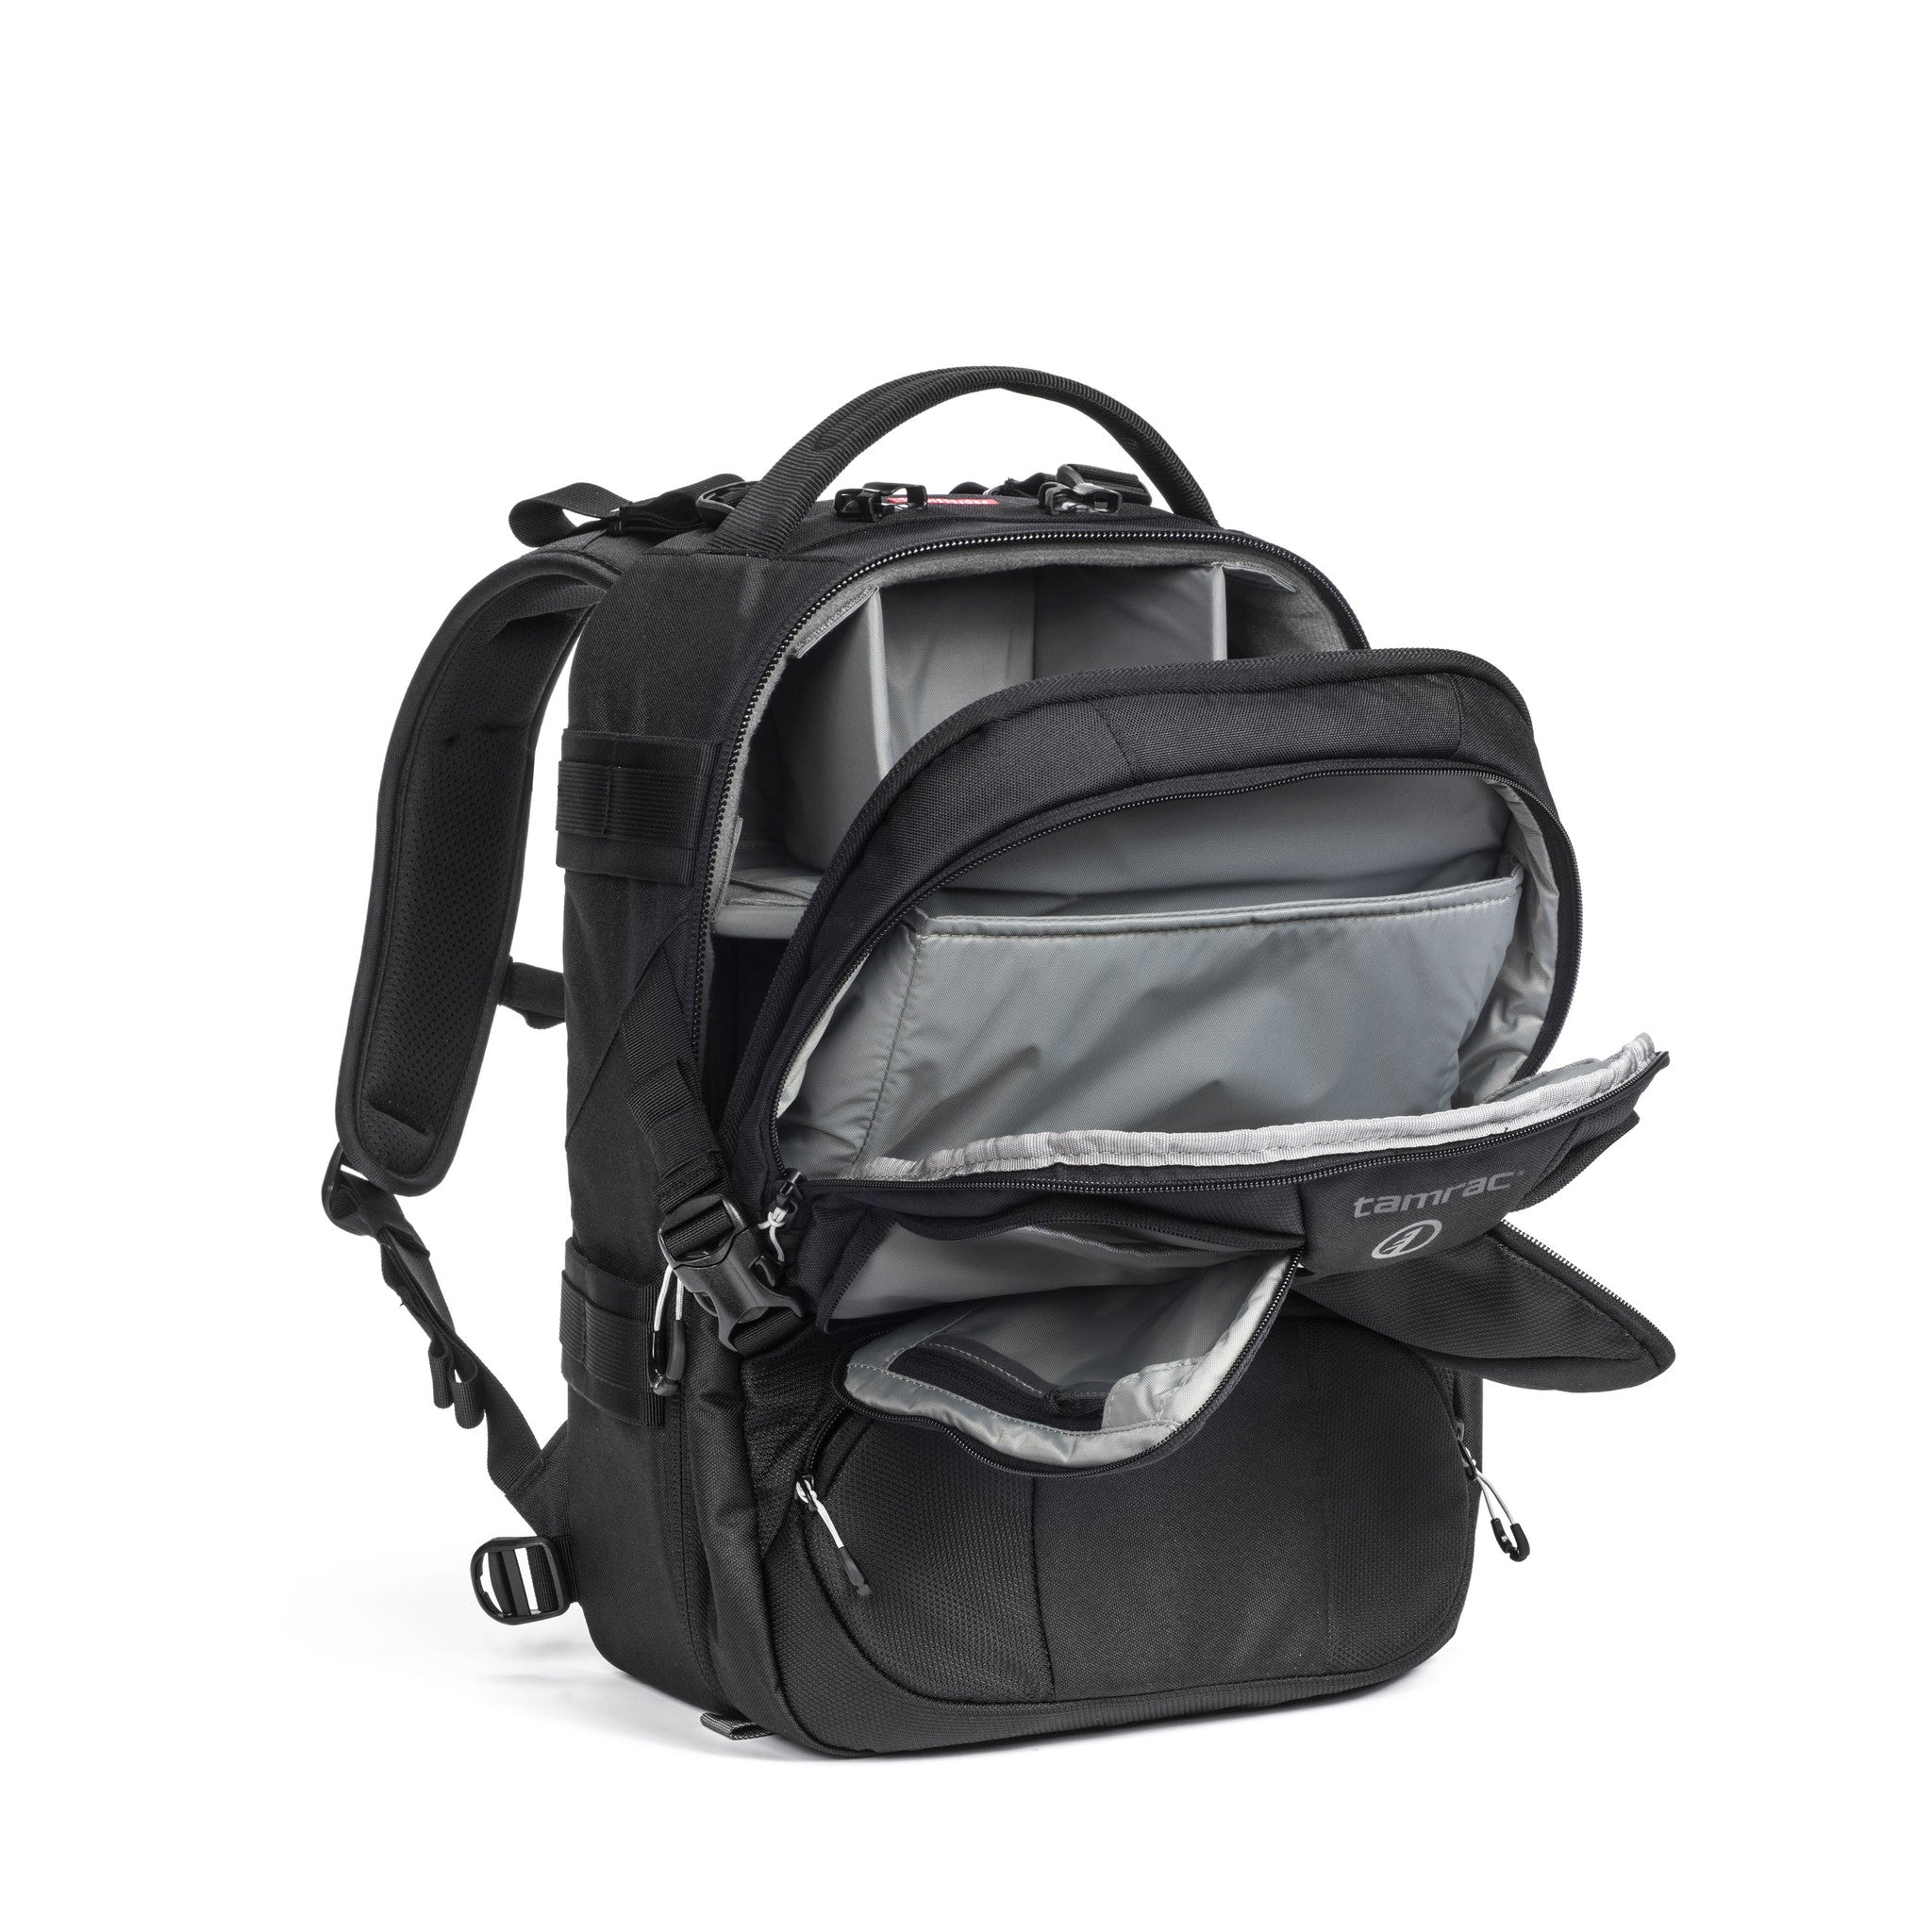 6bd489478c Tamrac Anvil Slim 11 Pro Camera Backpack - Free Shipping